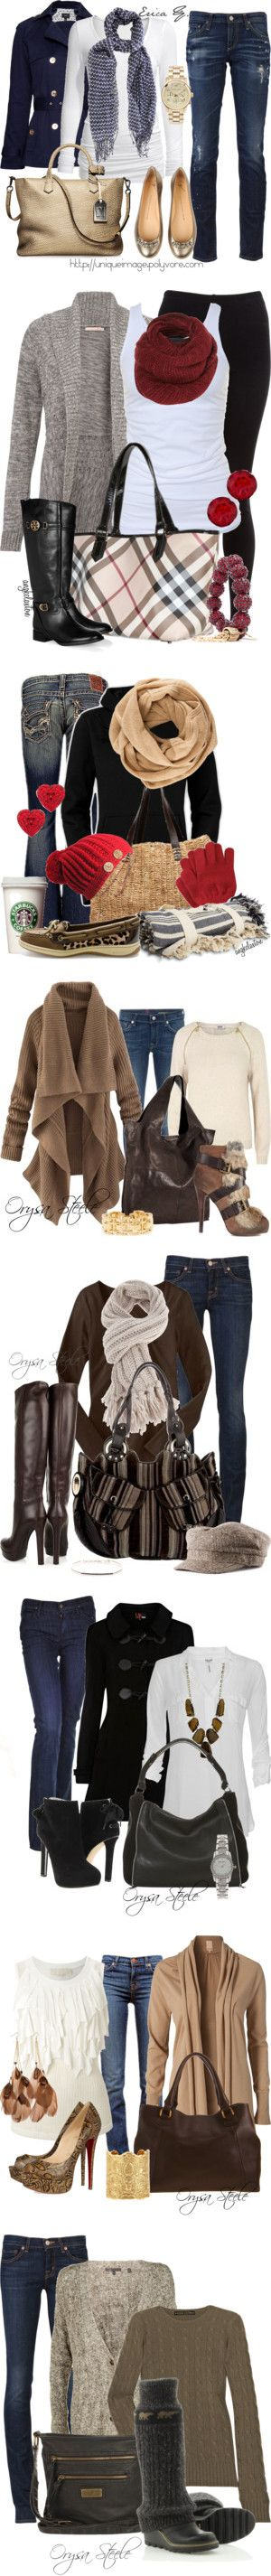 Winter time: Outfit Ideas, Time Fashion, Fall Outfits, Winter Styles, Closet, Winter Love, Fall Winter Outfits, Cute Clothes, Fall Winter Time